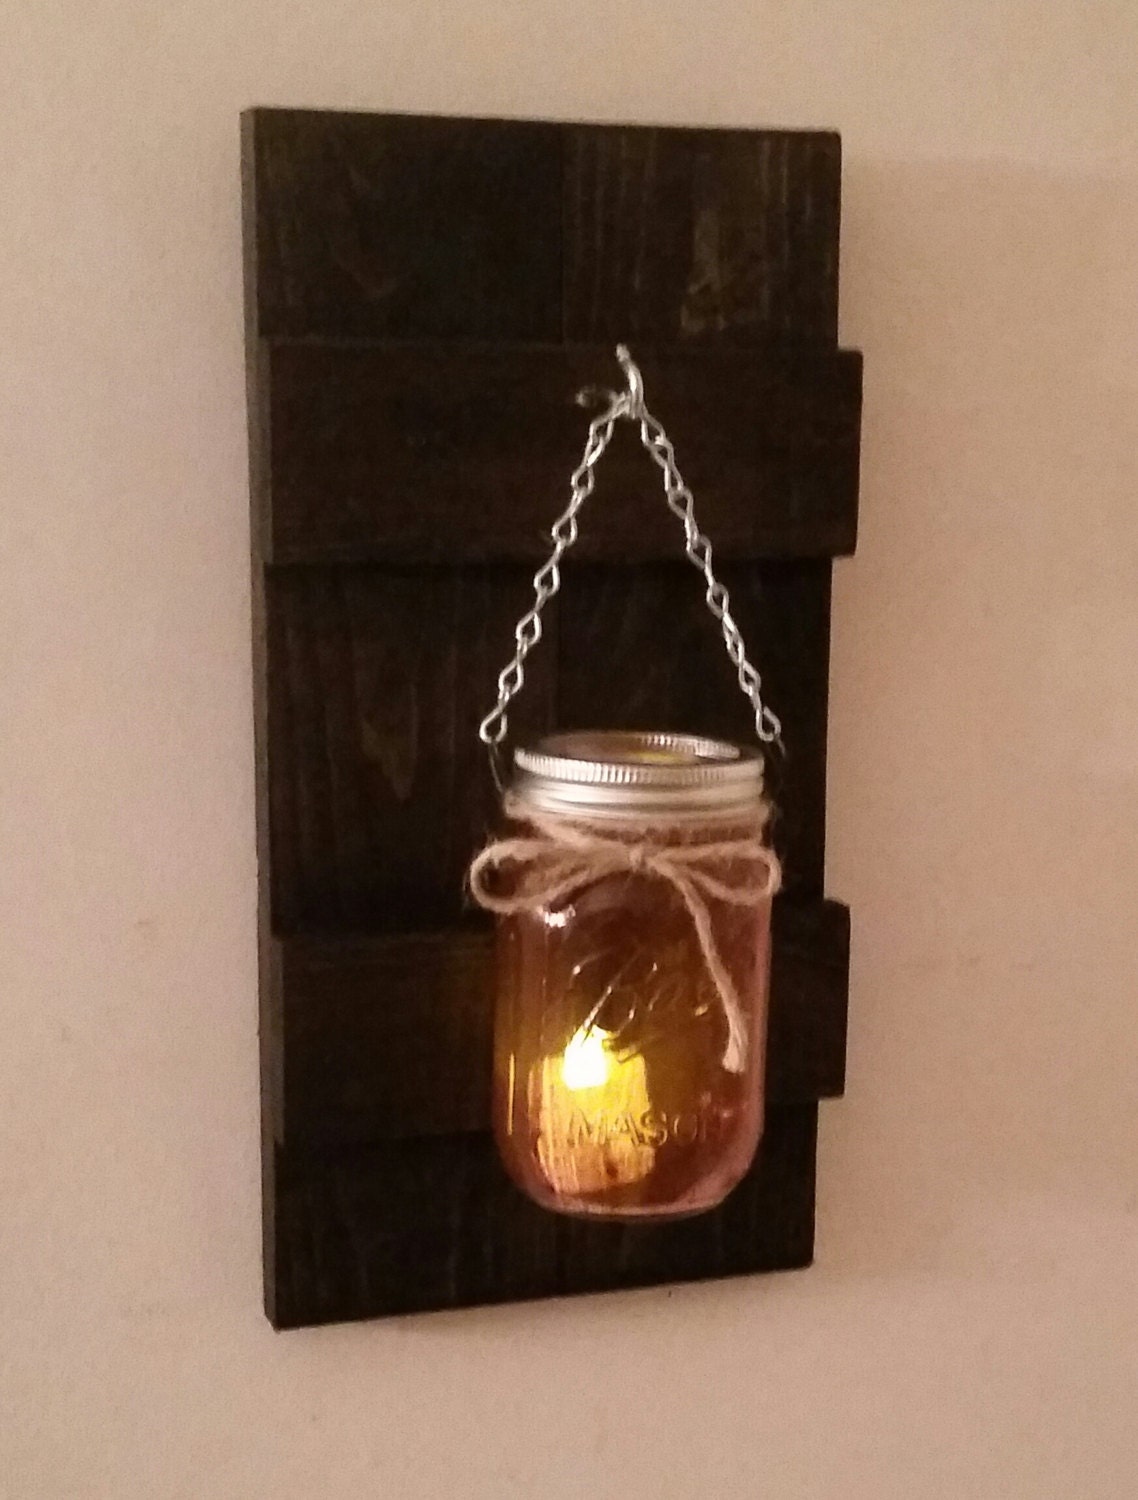 Wall Sconces With Battery Operated Candles : Rustic Wall Sconce With Ball Mason Jar and Battery Operated Candle Holder Candles - Zeppy.io